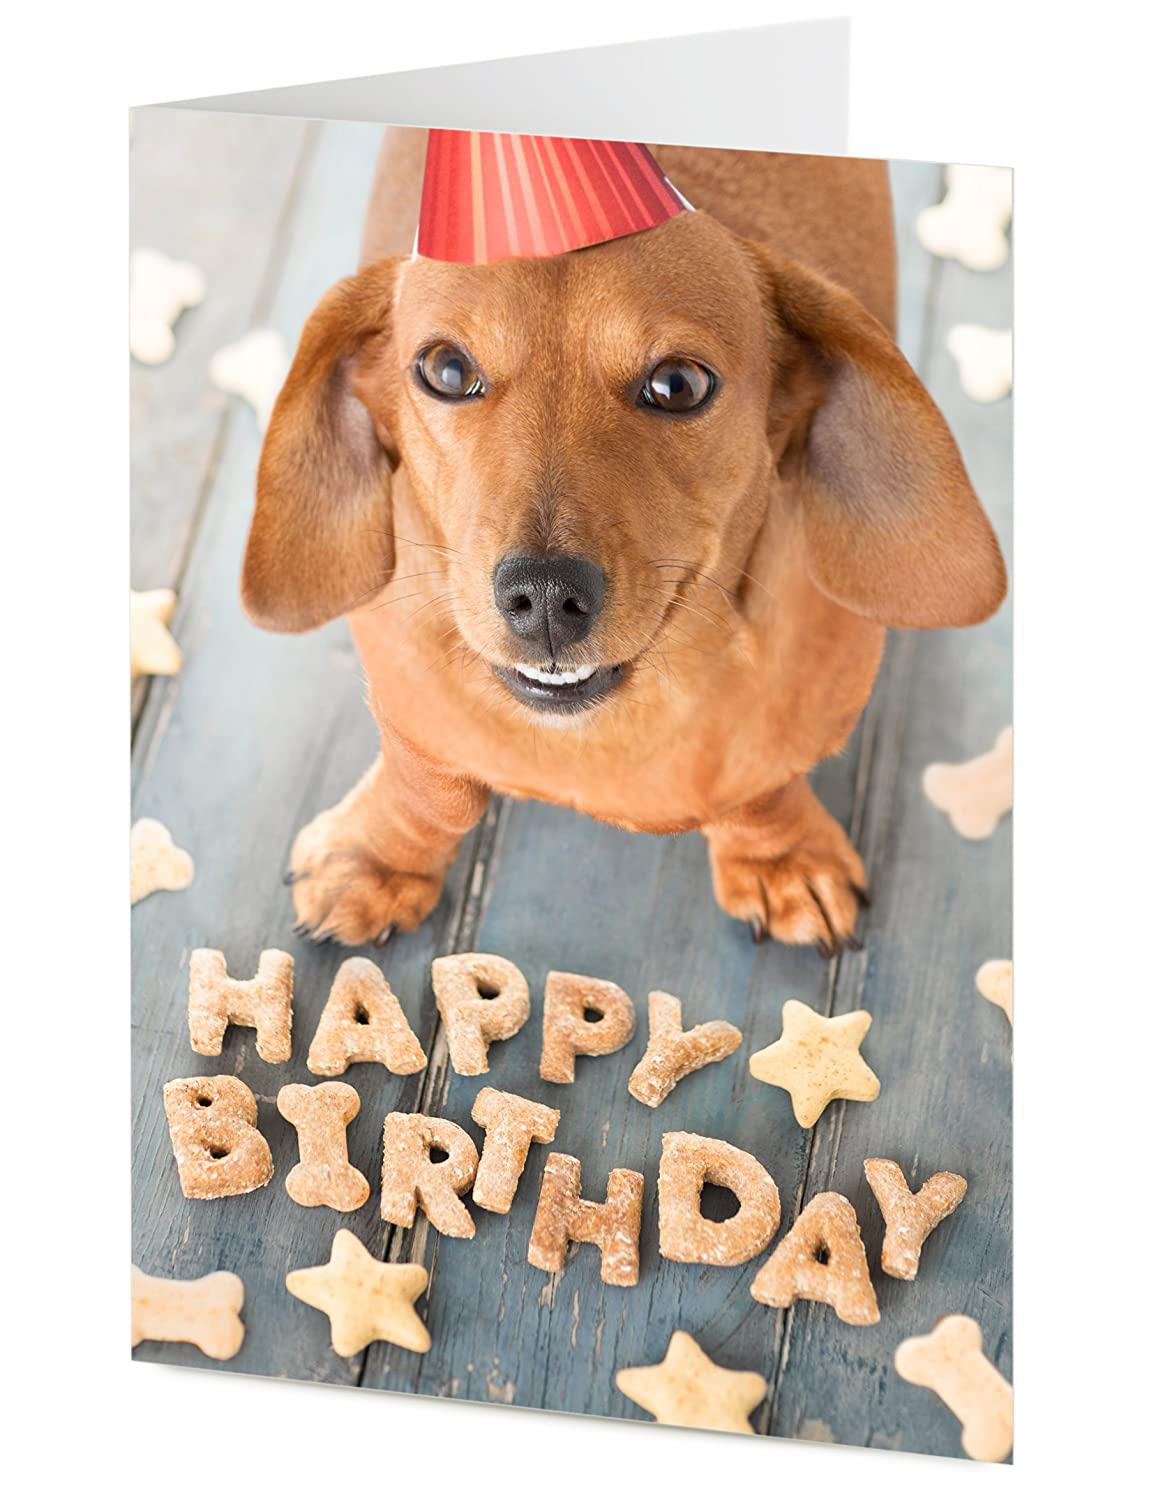 Cute dachshund sausage dog arranges doggy treats to say happy cute dachshund sausage dog arranges doggy treats to say happy birthday birthday card amazon office products kristyandbryce Choice Image